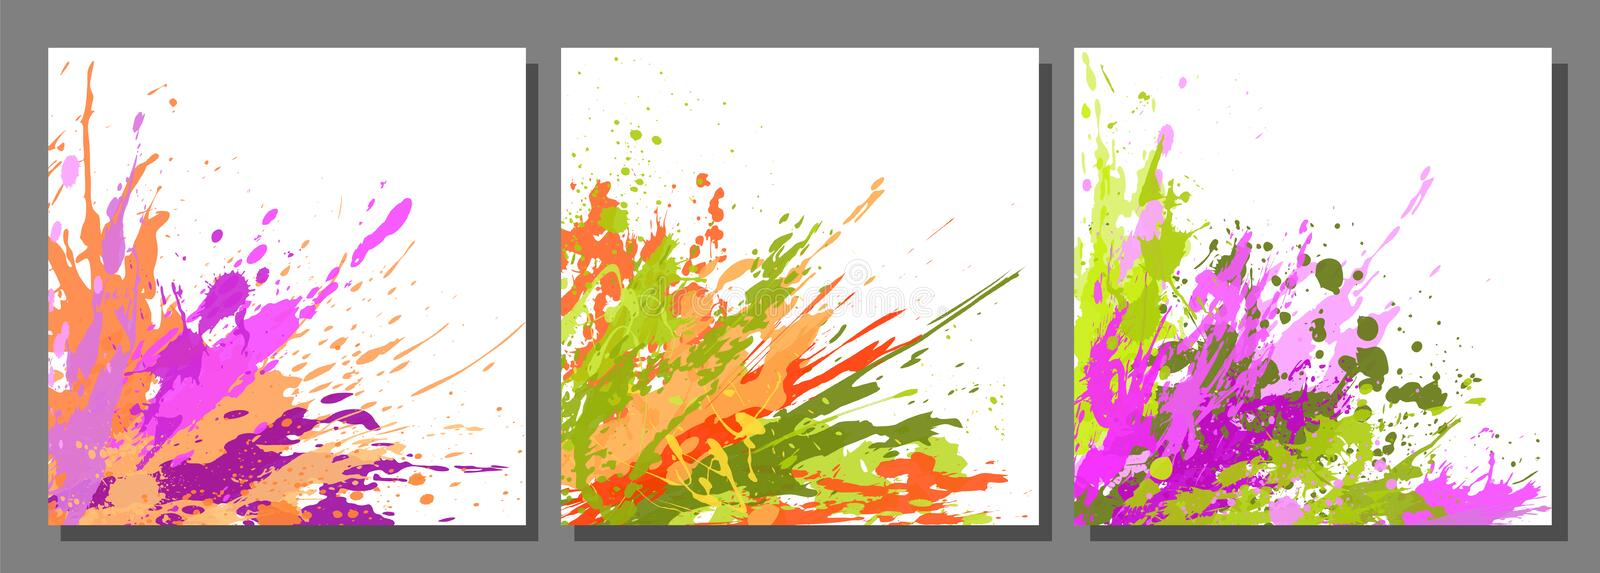 Set of Backgrounds and paint blots, splashes, drops royalty free illustration